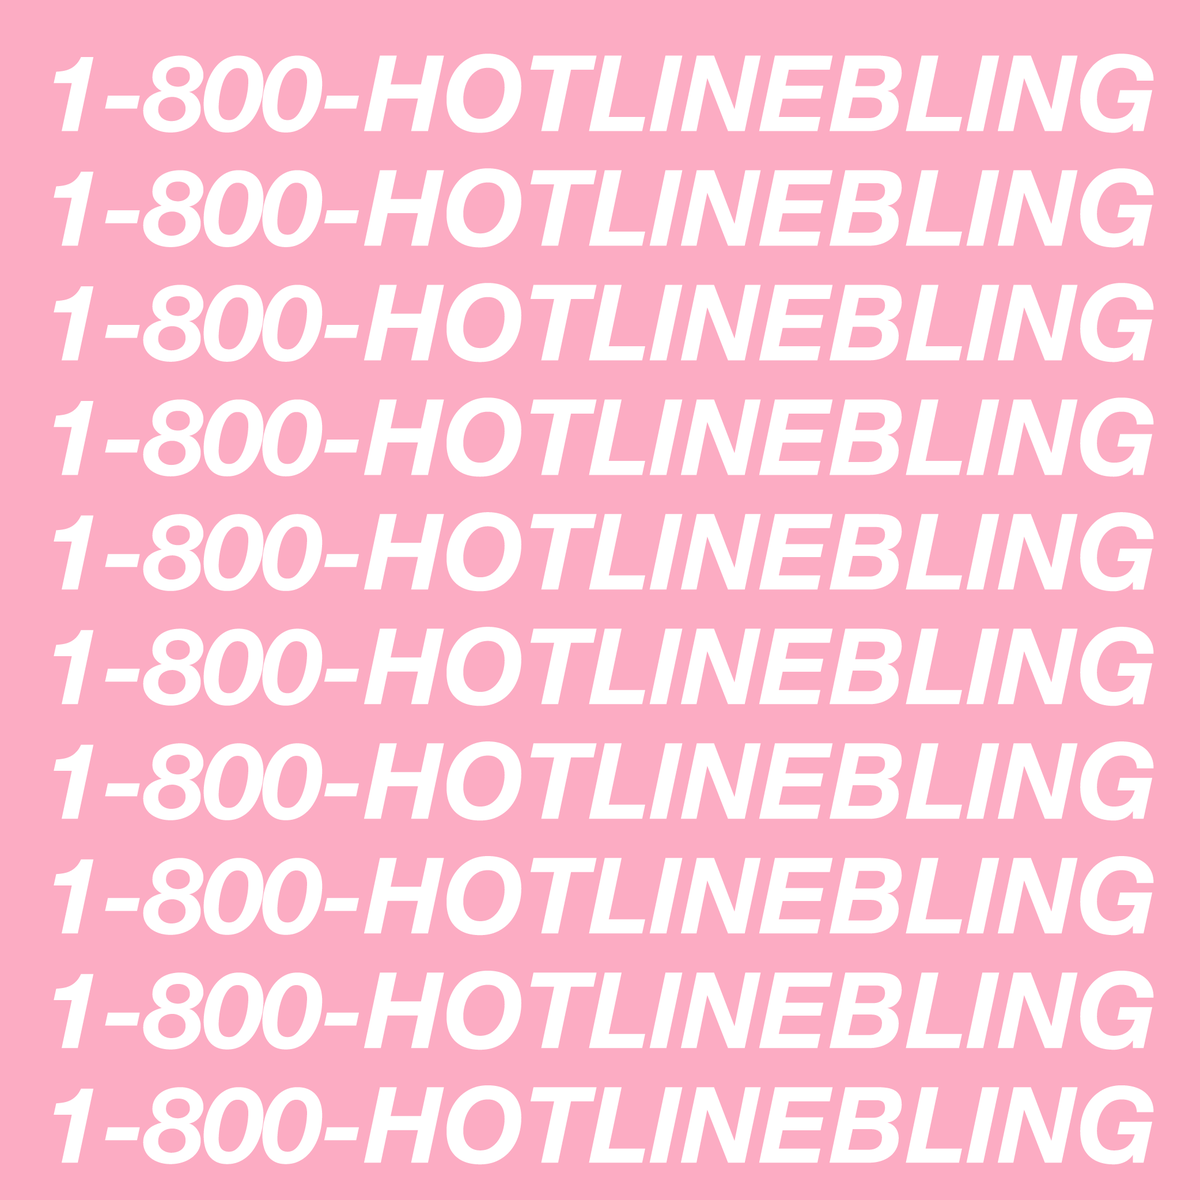 Drake ~ Hotline Bling now playing on the OVO blog. http://t.co/cdT2zE6LWz http://t.co/P8aP9BtLre